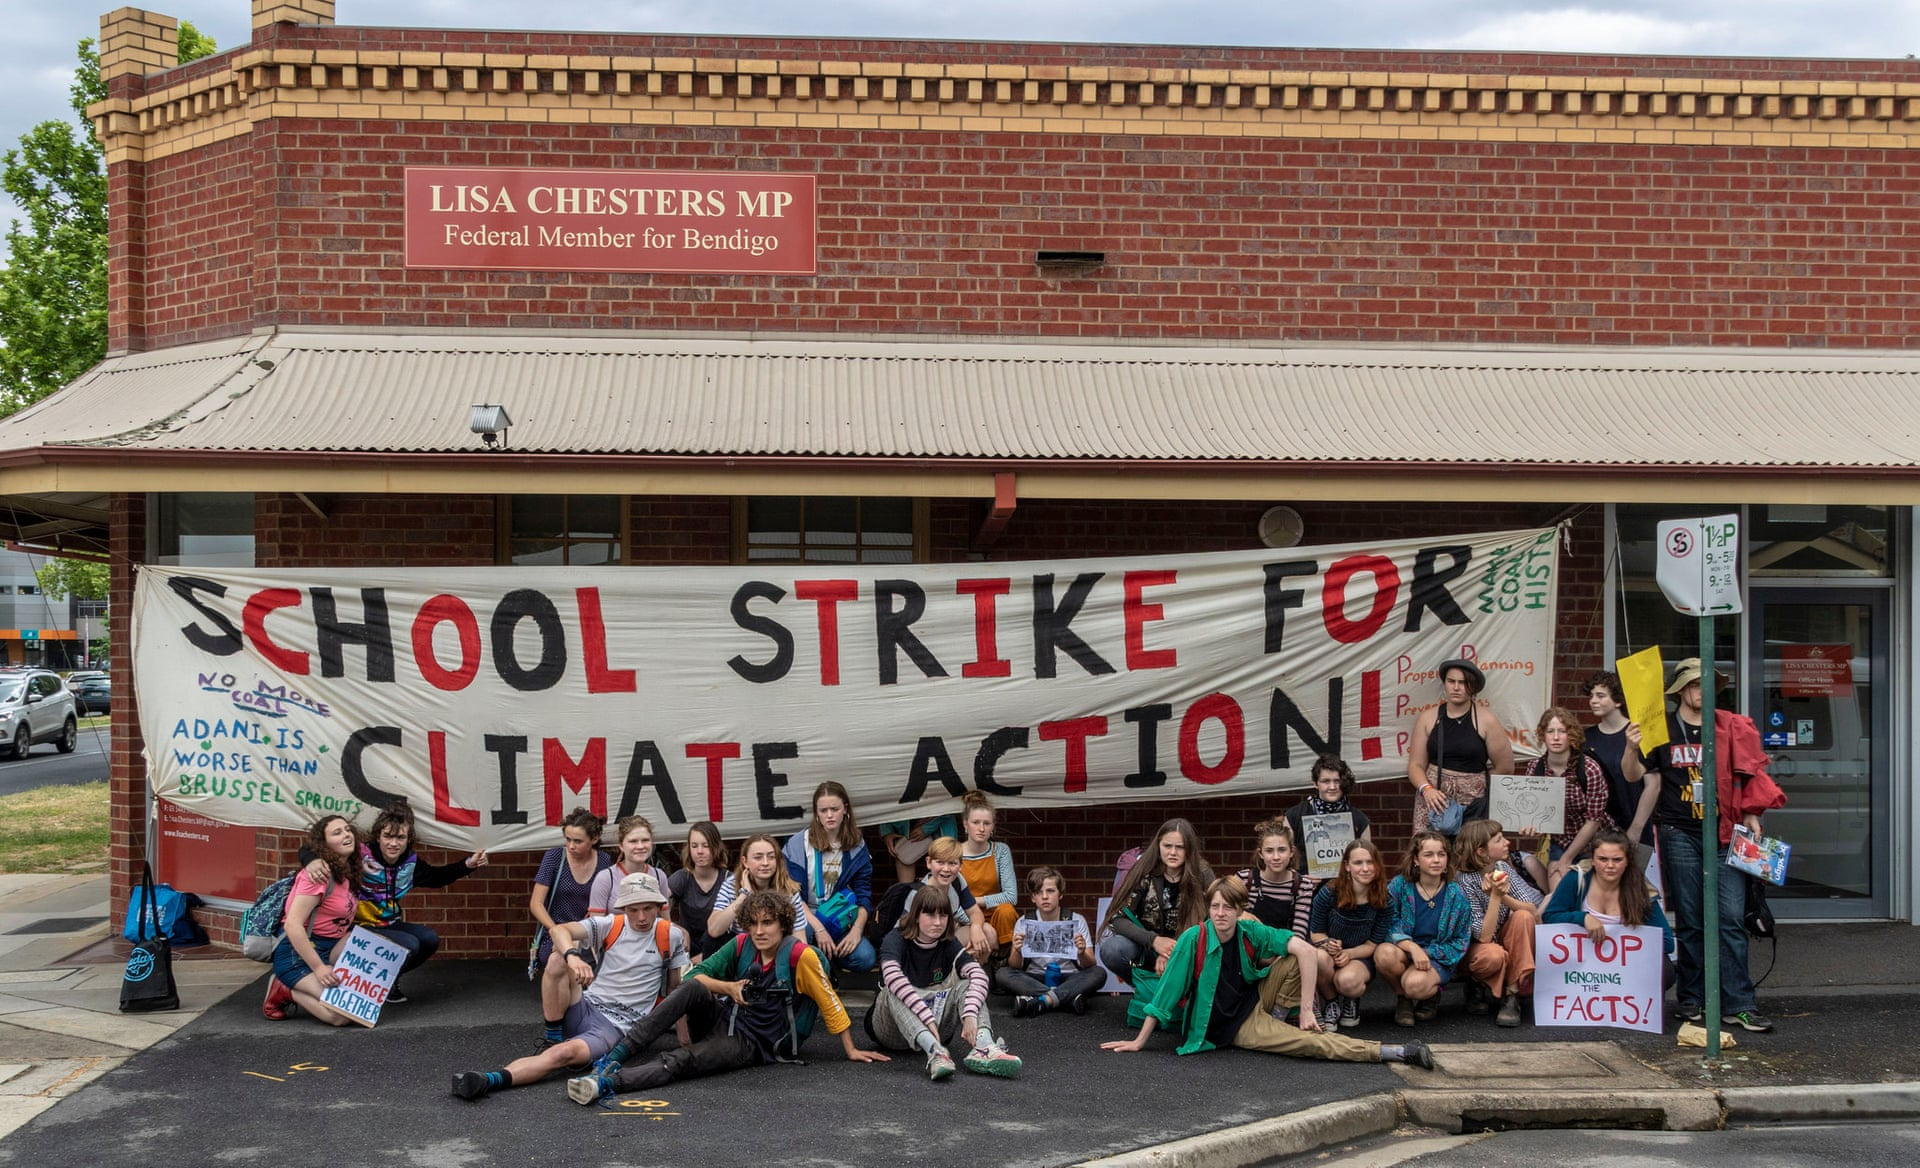 School Strike 4 Climate Twitter: Why Students Are Striking For Climate Action On November